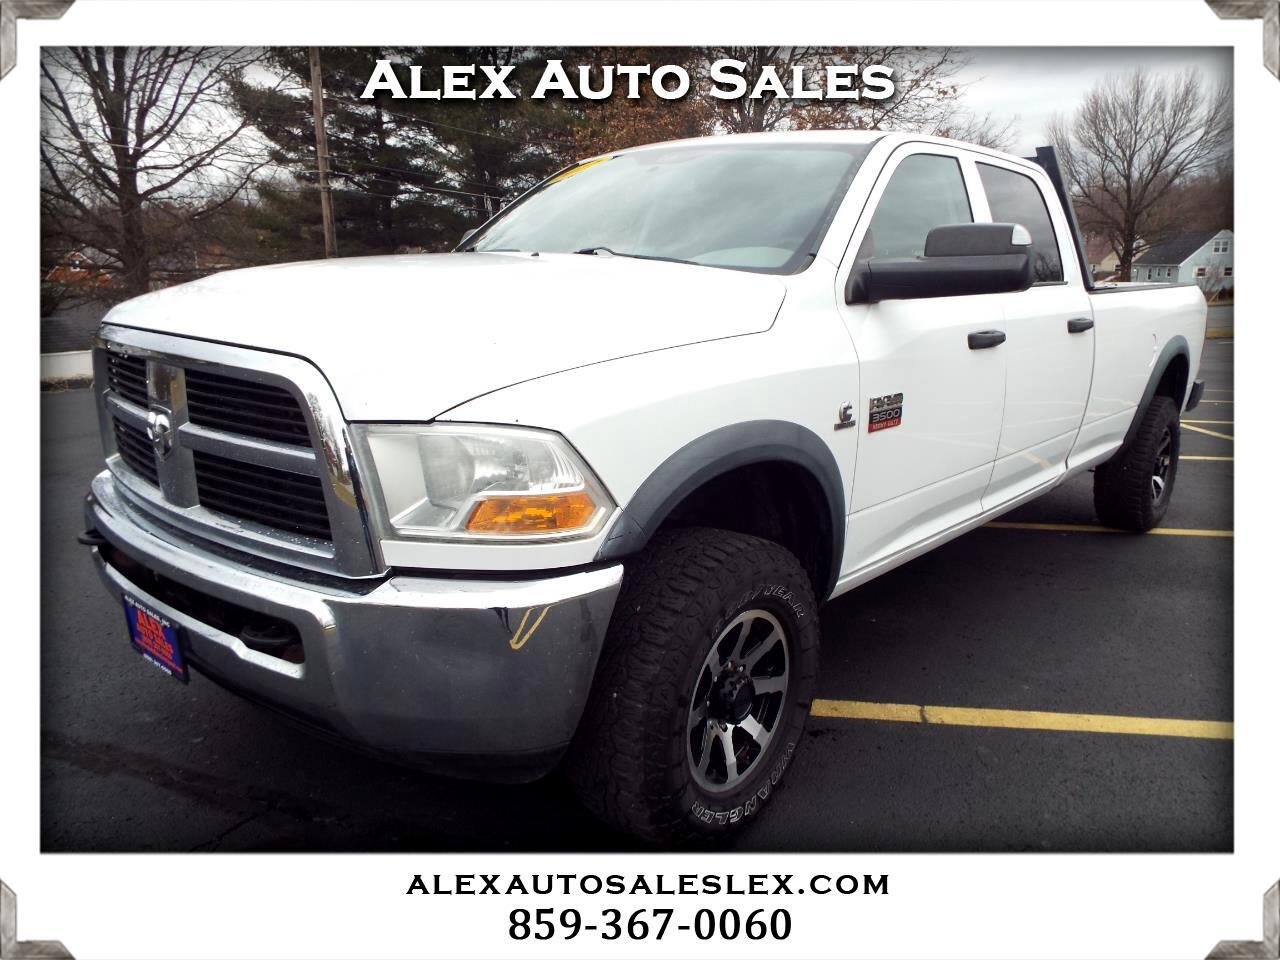 Dodge Ram Pickup 3500 SLT Quad Cab Long Bed 4WD 2012